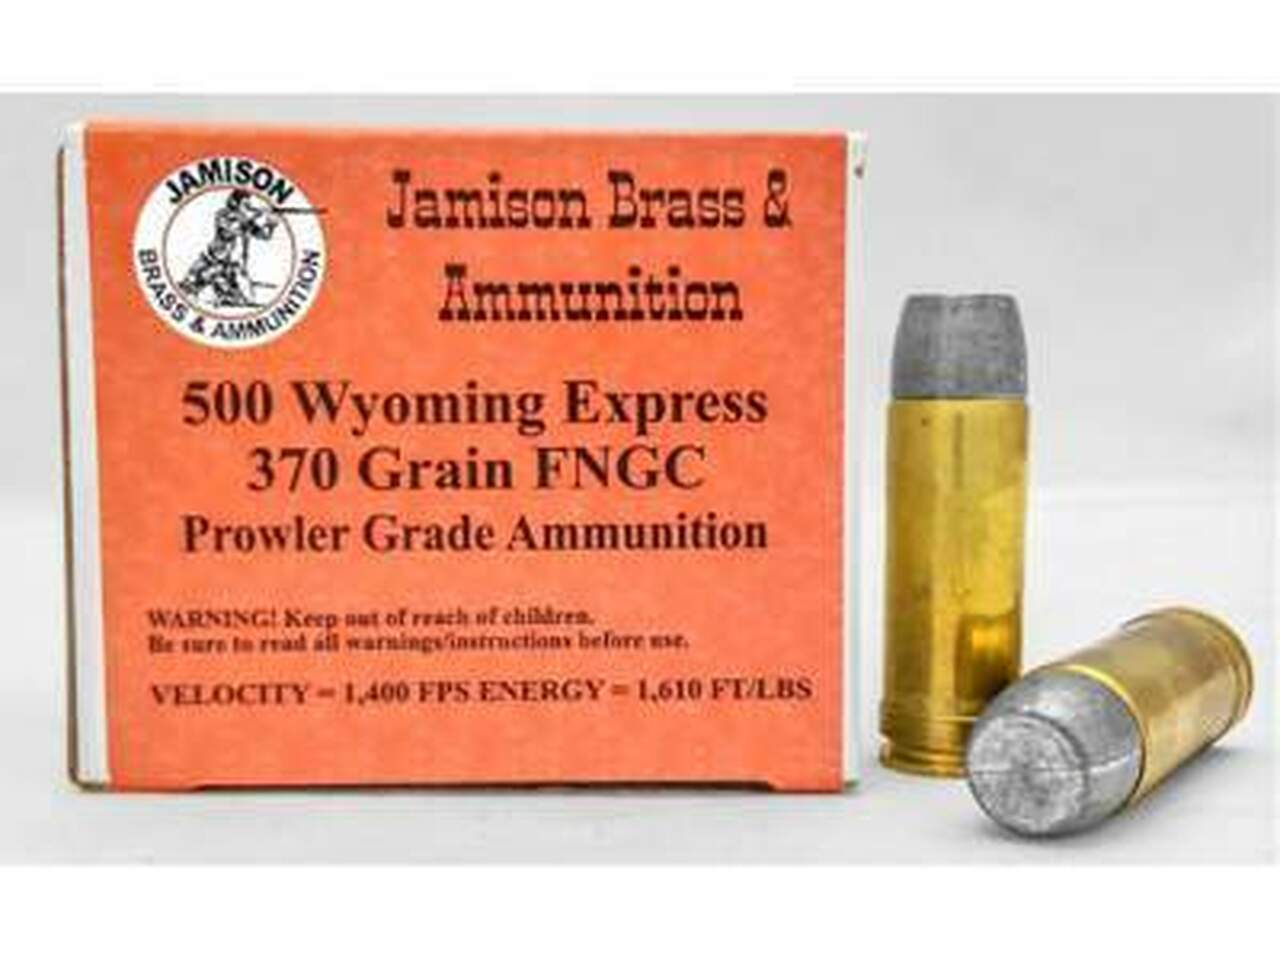 500 Wyoming Express Ammo